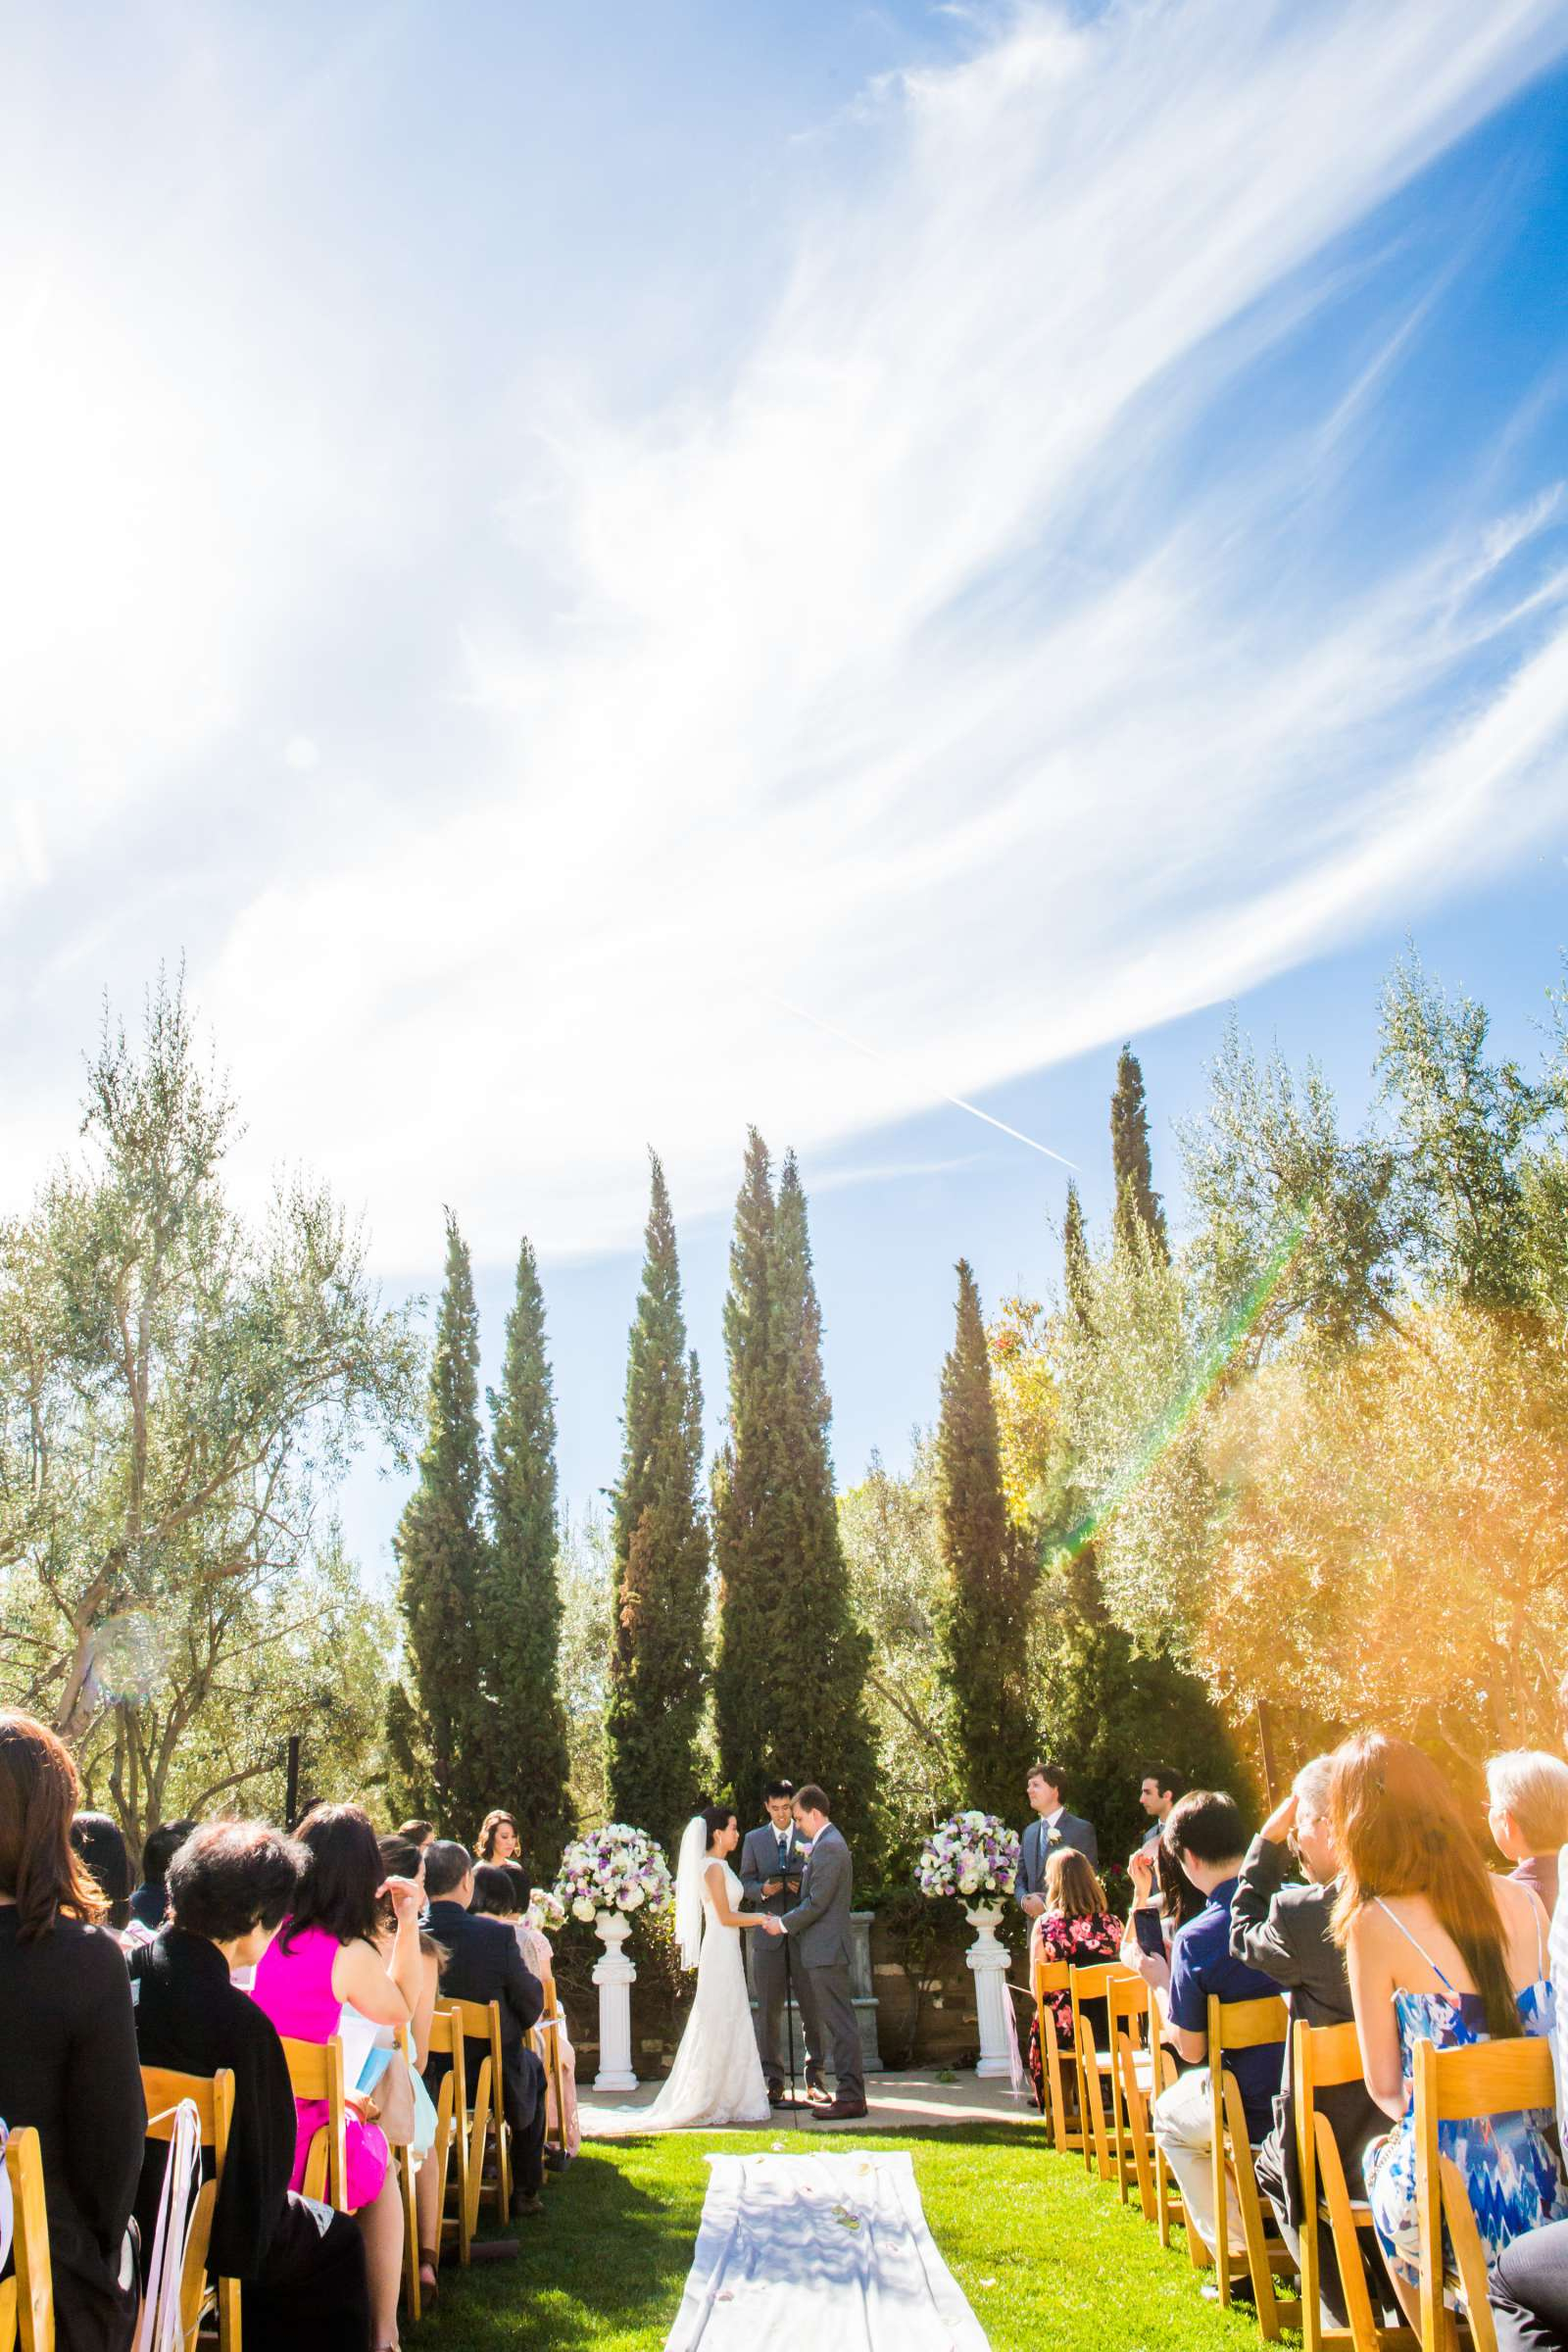 Estancia Wedding coordinated by Holly Kalkin Weddings, Jeanine and Eugene Wedding Photo #9 by True Photography